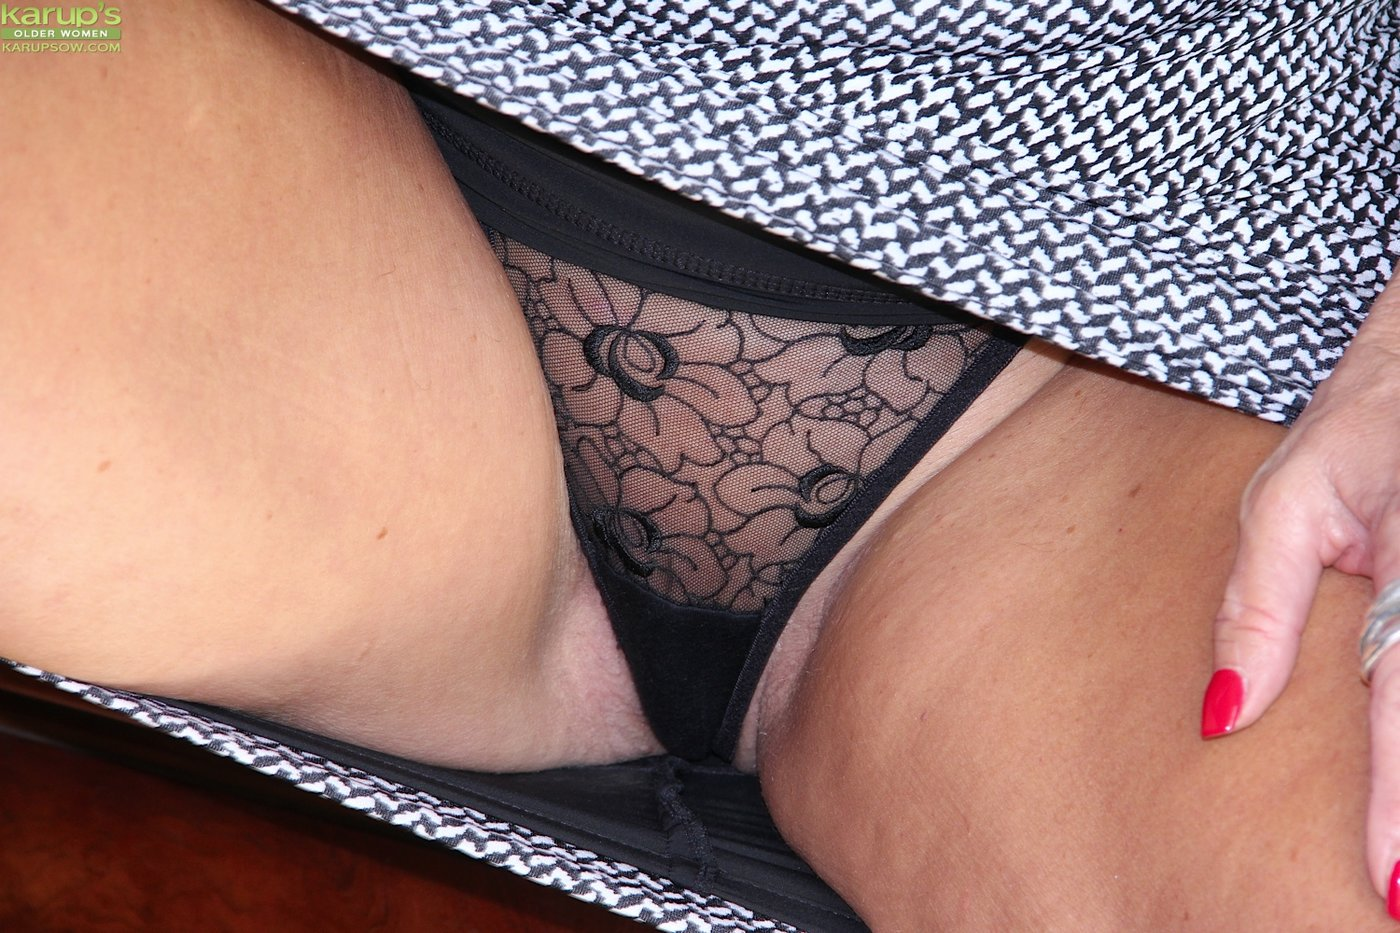 Clit Rubbing Through Panties